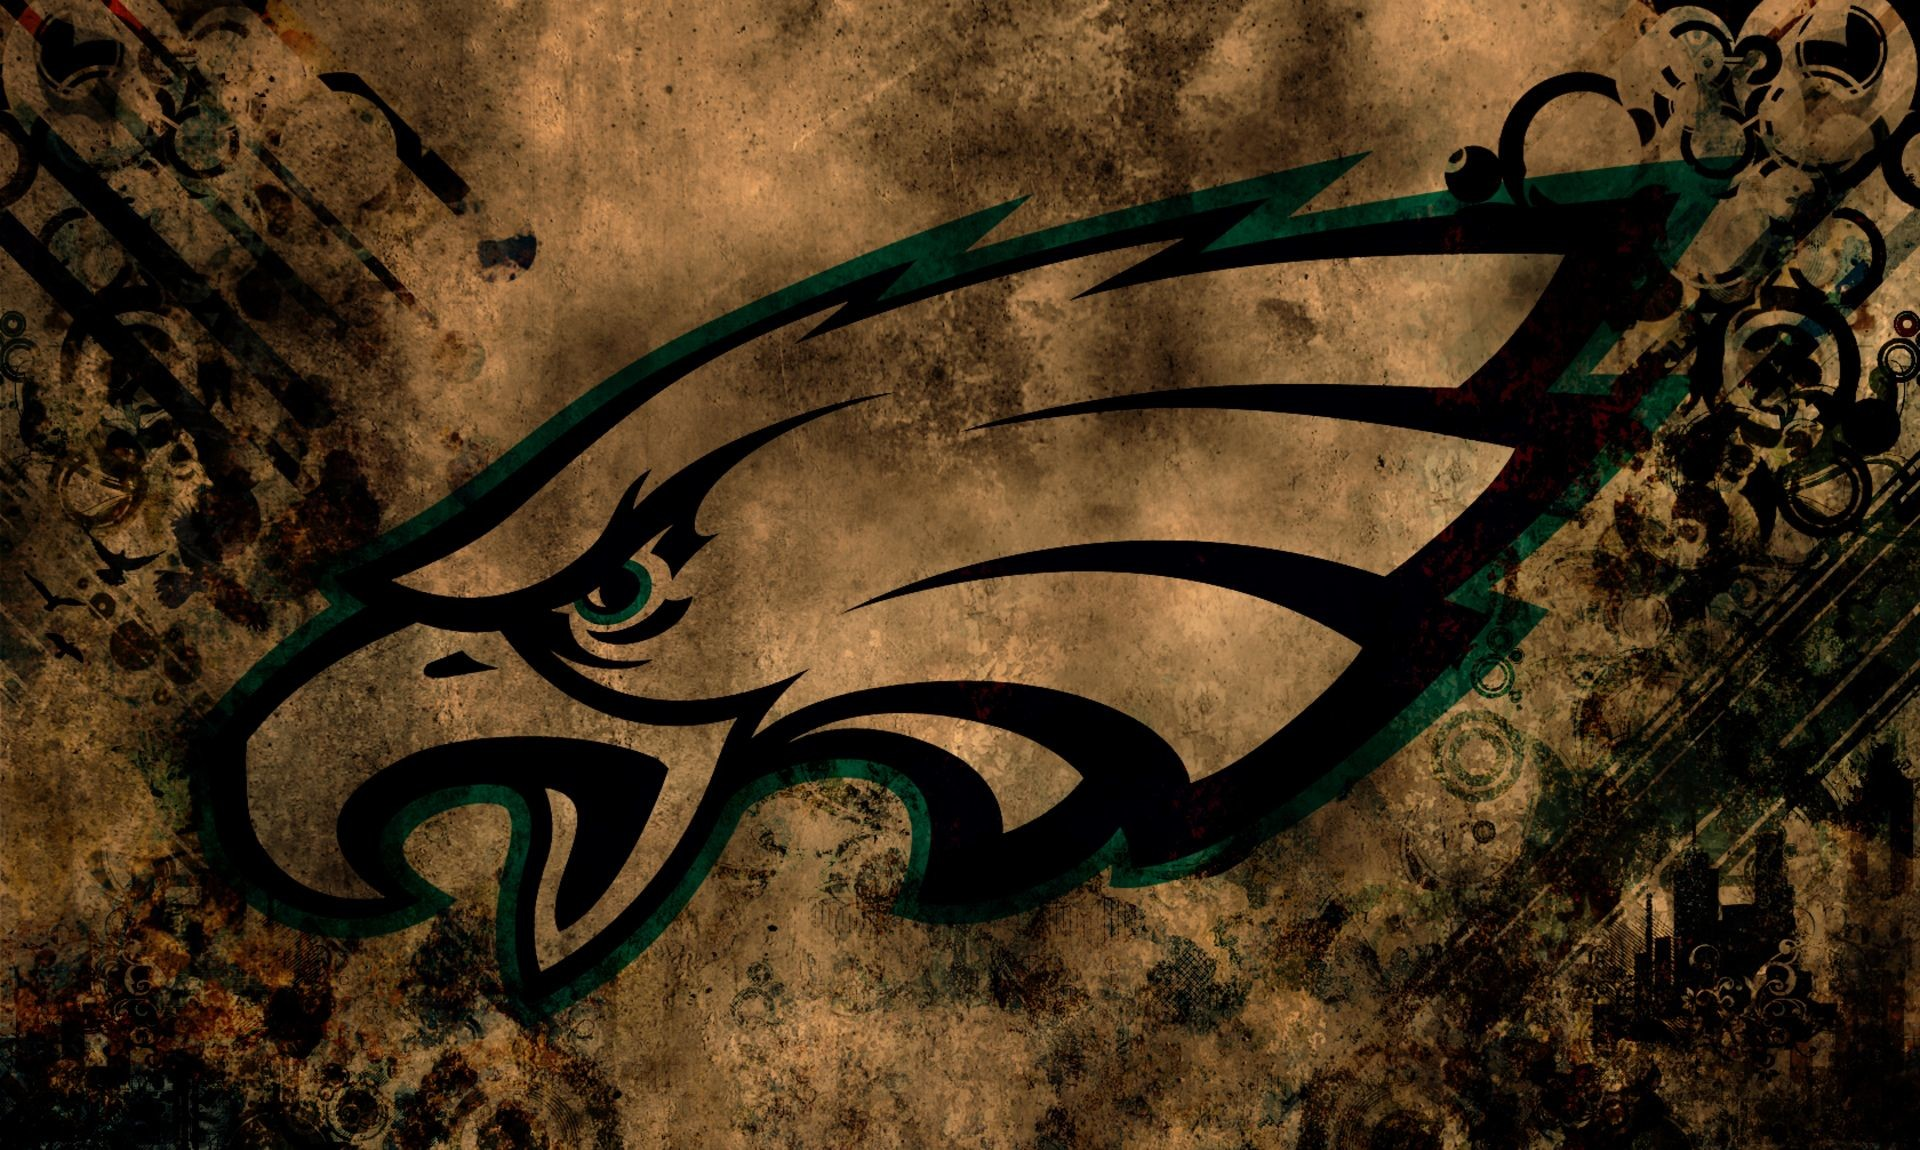 1920x1150 Philadelphia Eagles Wallpaper For Computer, HD Philadelphia Eagles 1024×768 Philadelphia  Desktop Wallpapers (42 Wallpapers) | Adorable Wallpapers ...